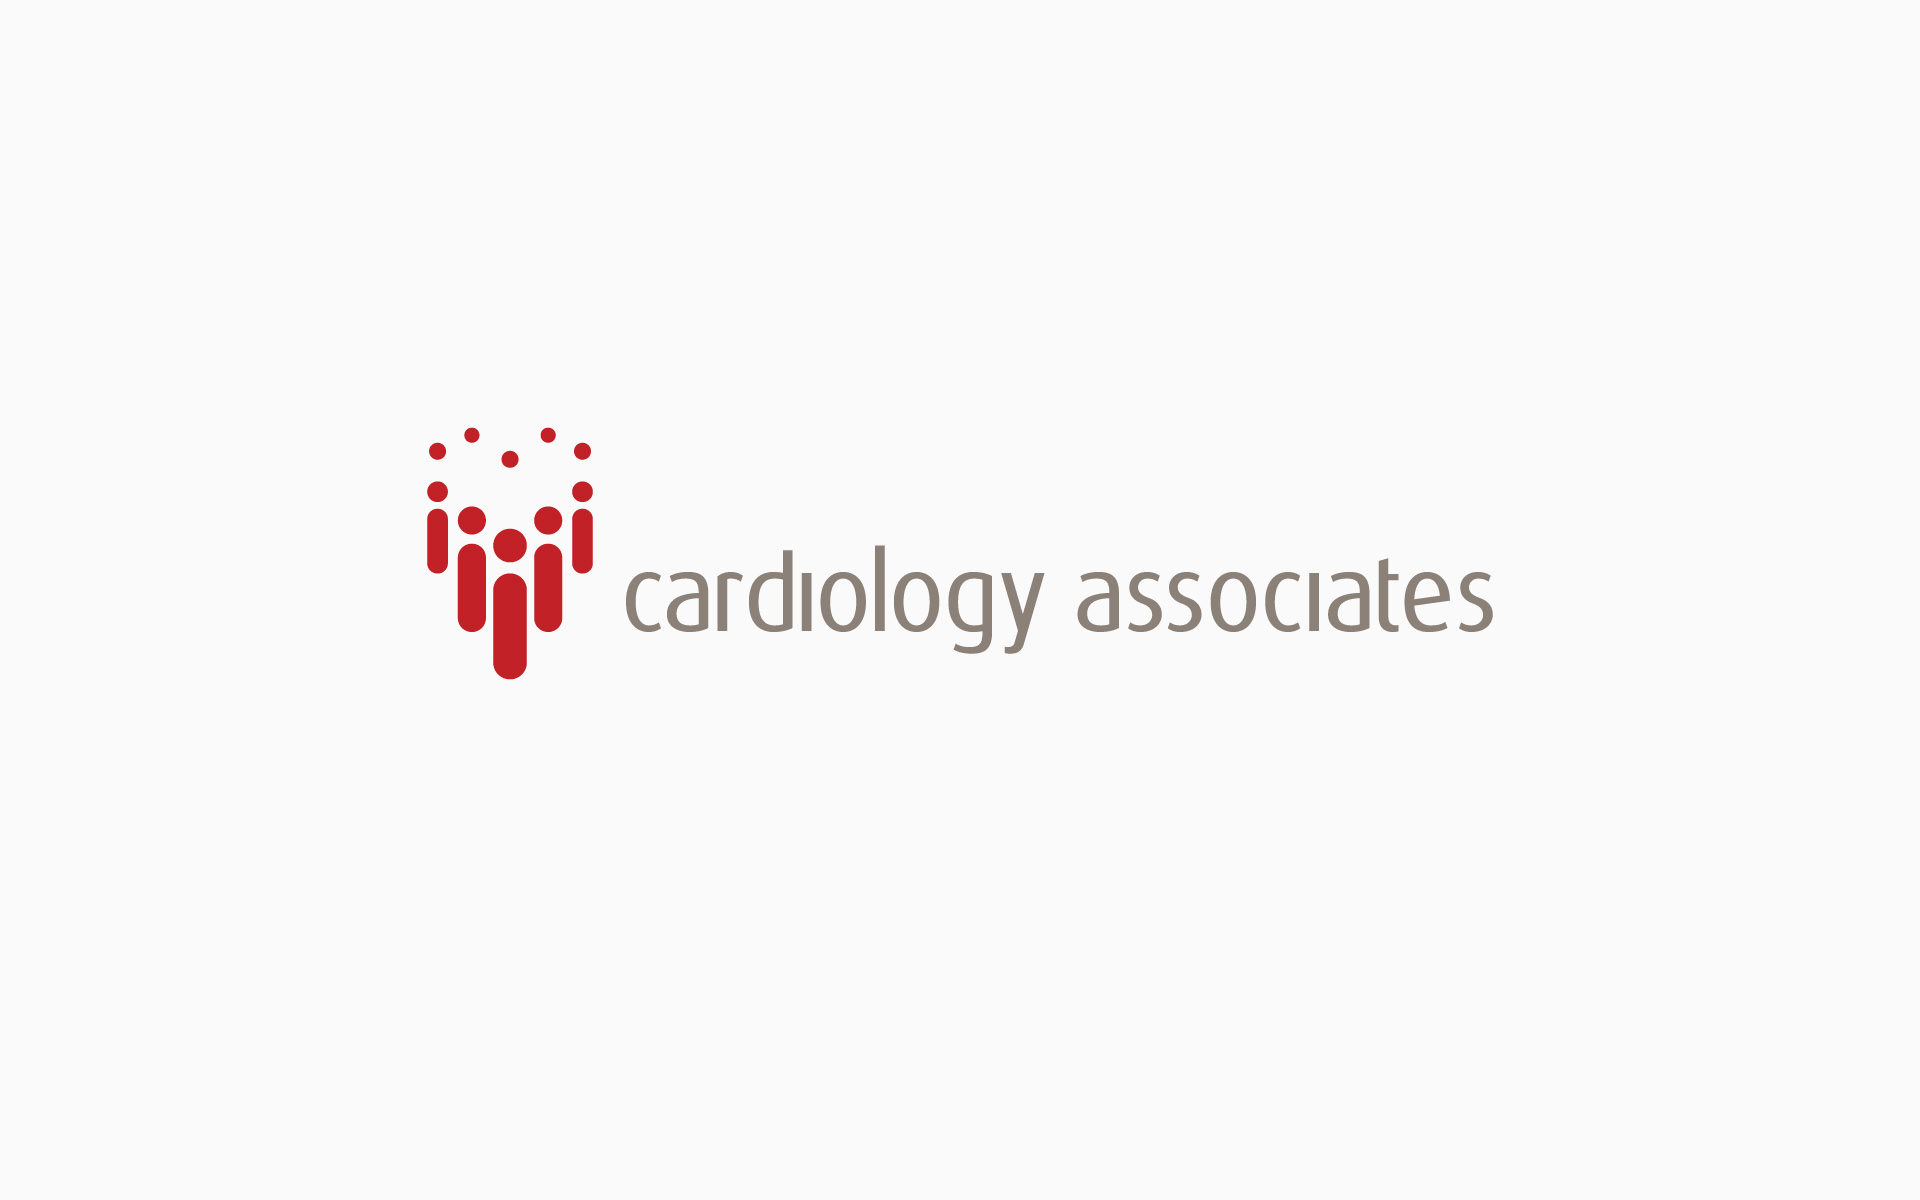 Cardiology Associates of Waterbury Brand Identity